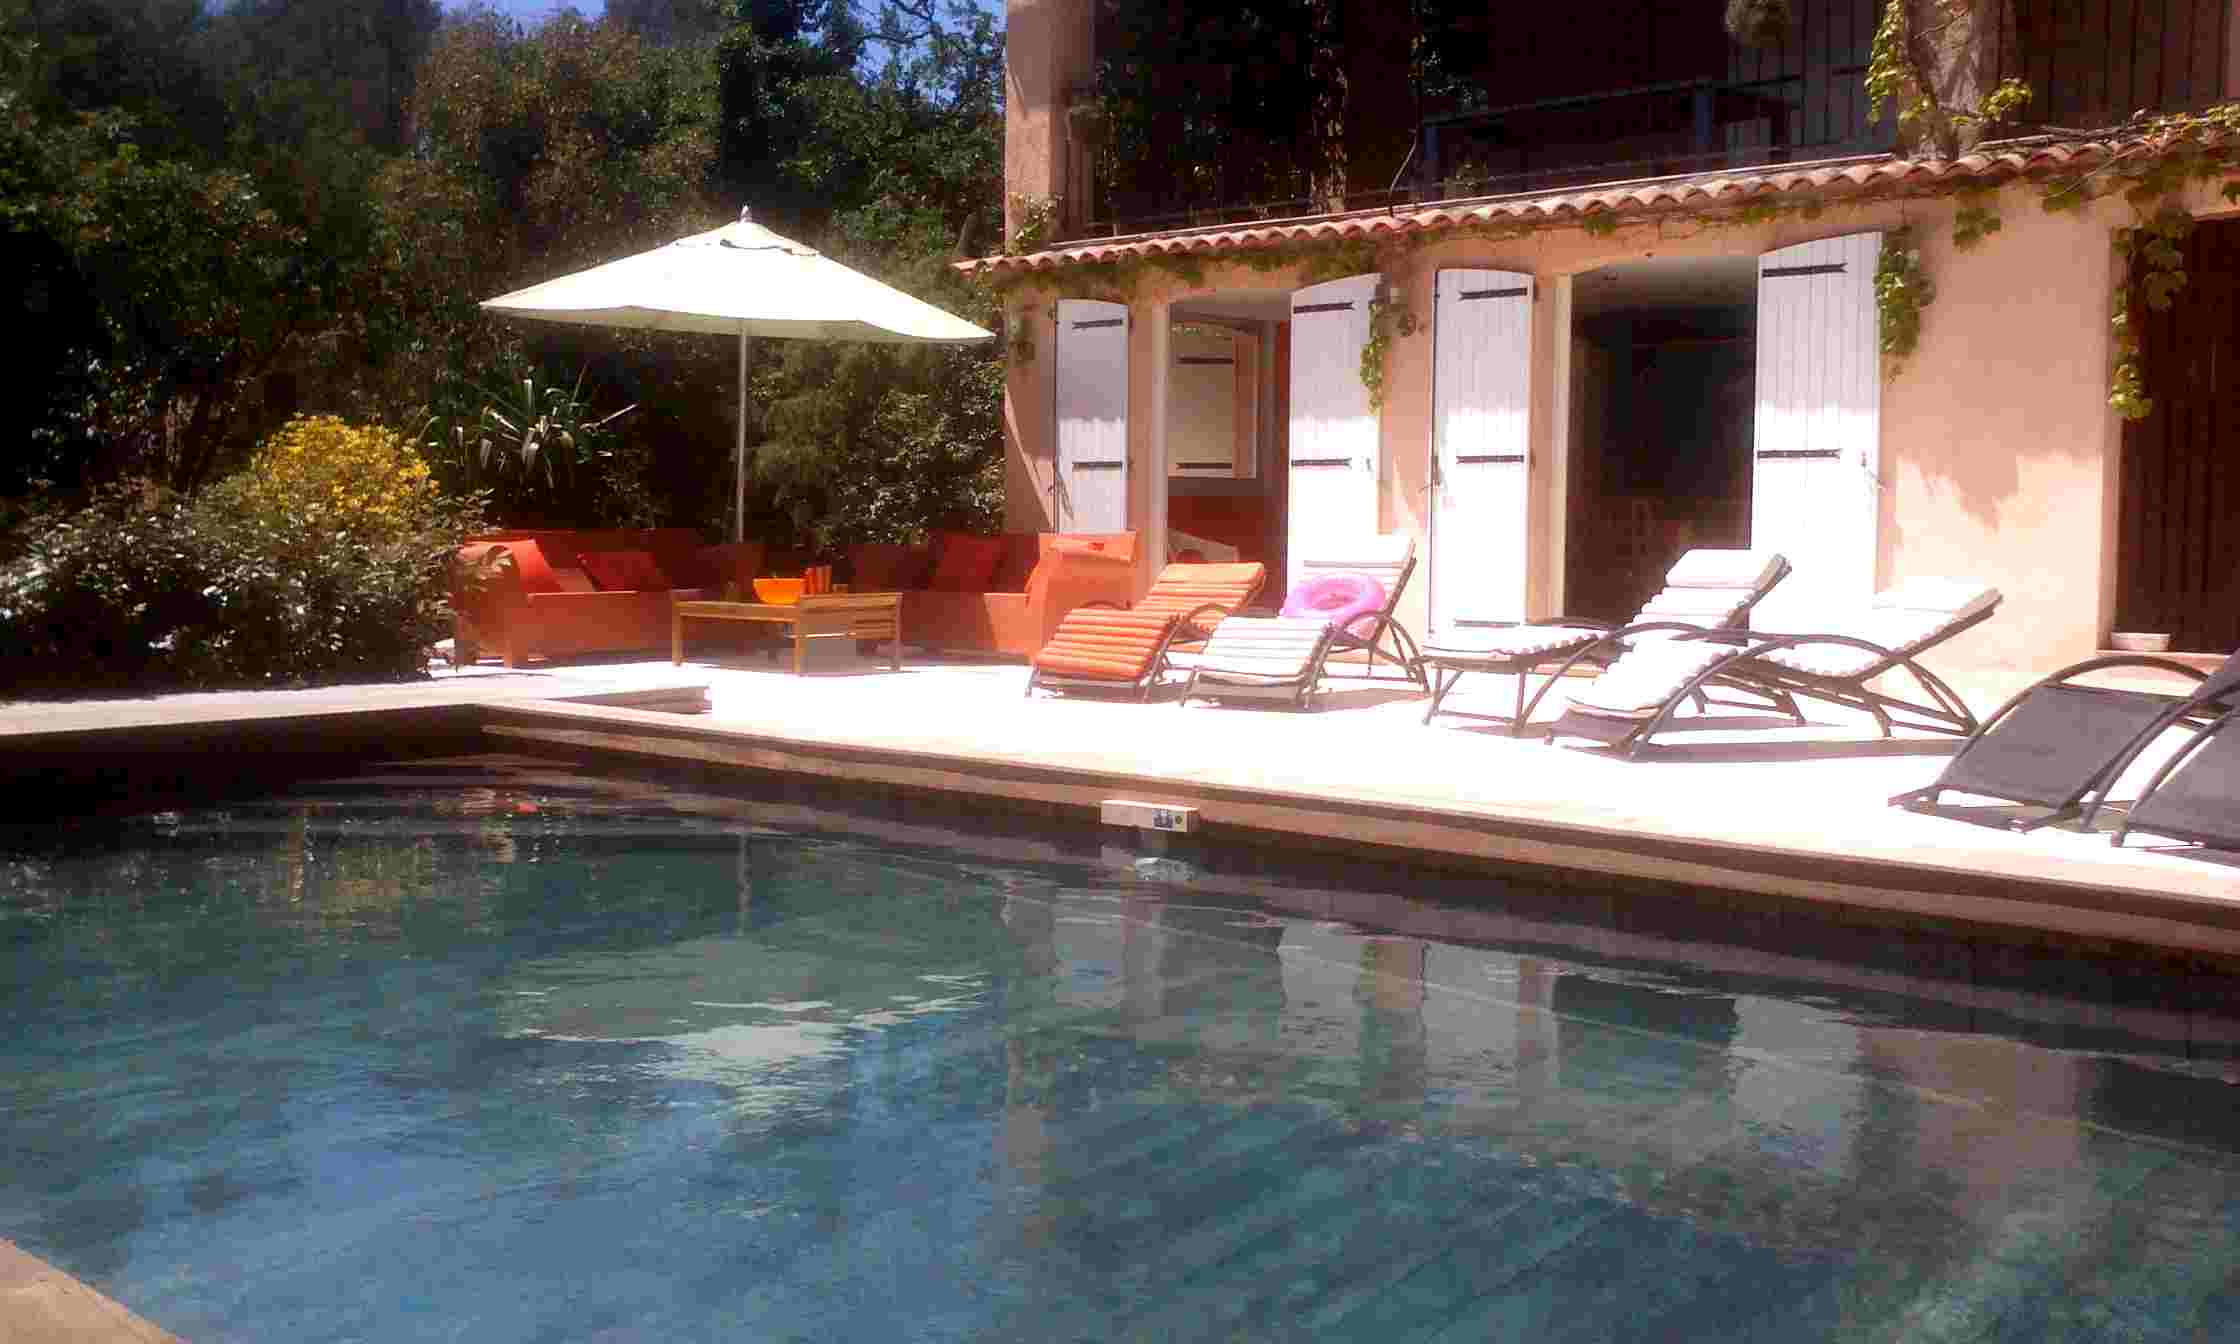 Holiday house rental in Frejus France House with large pool near beaches and golf.